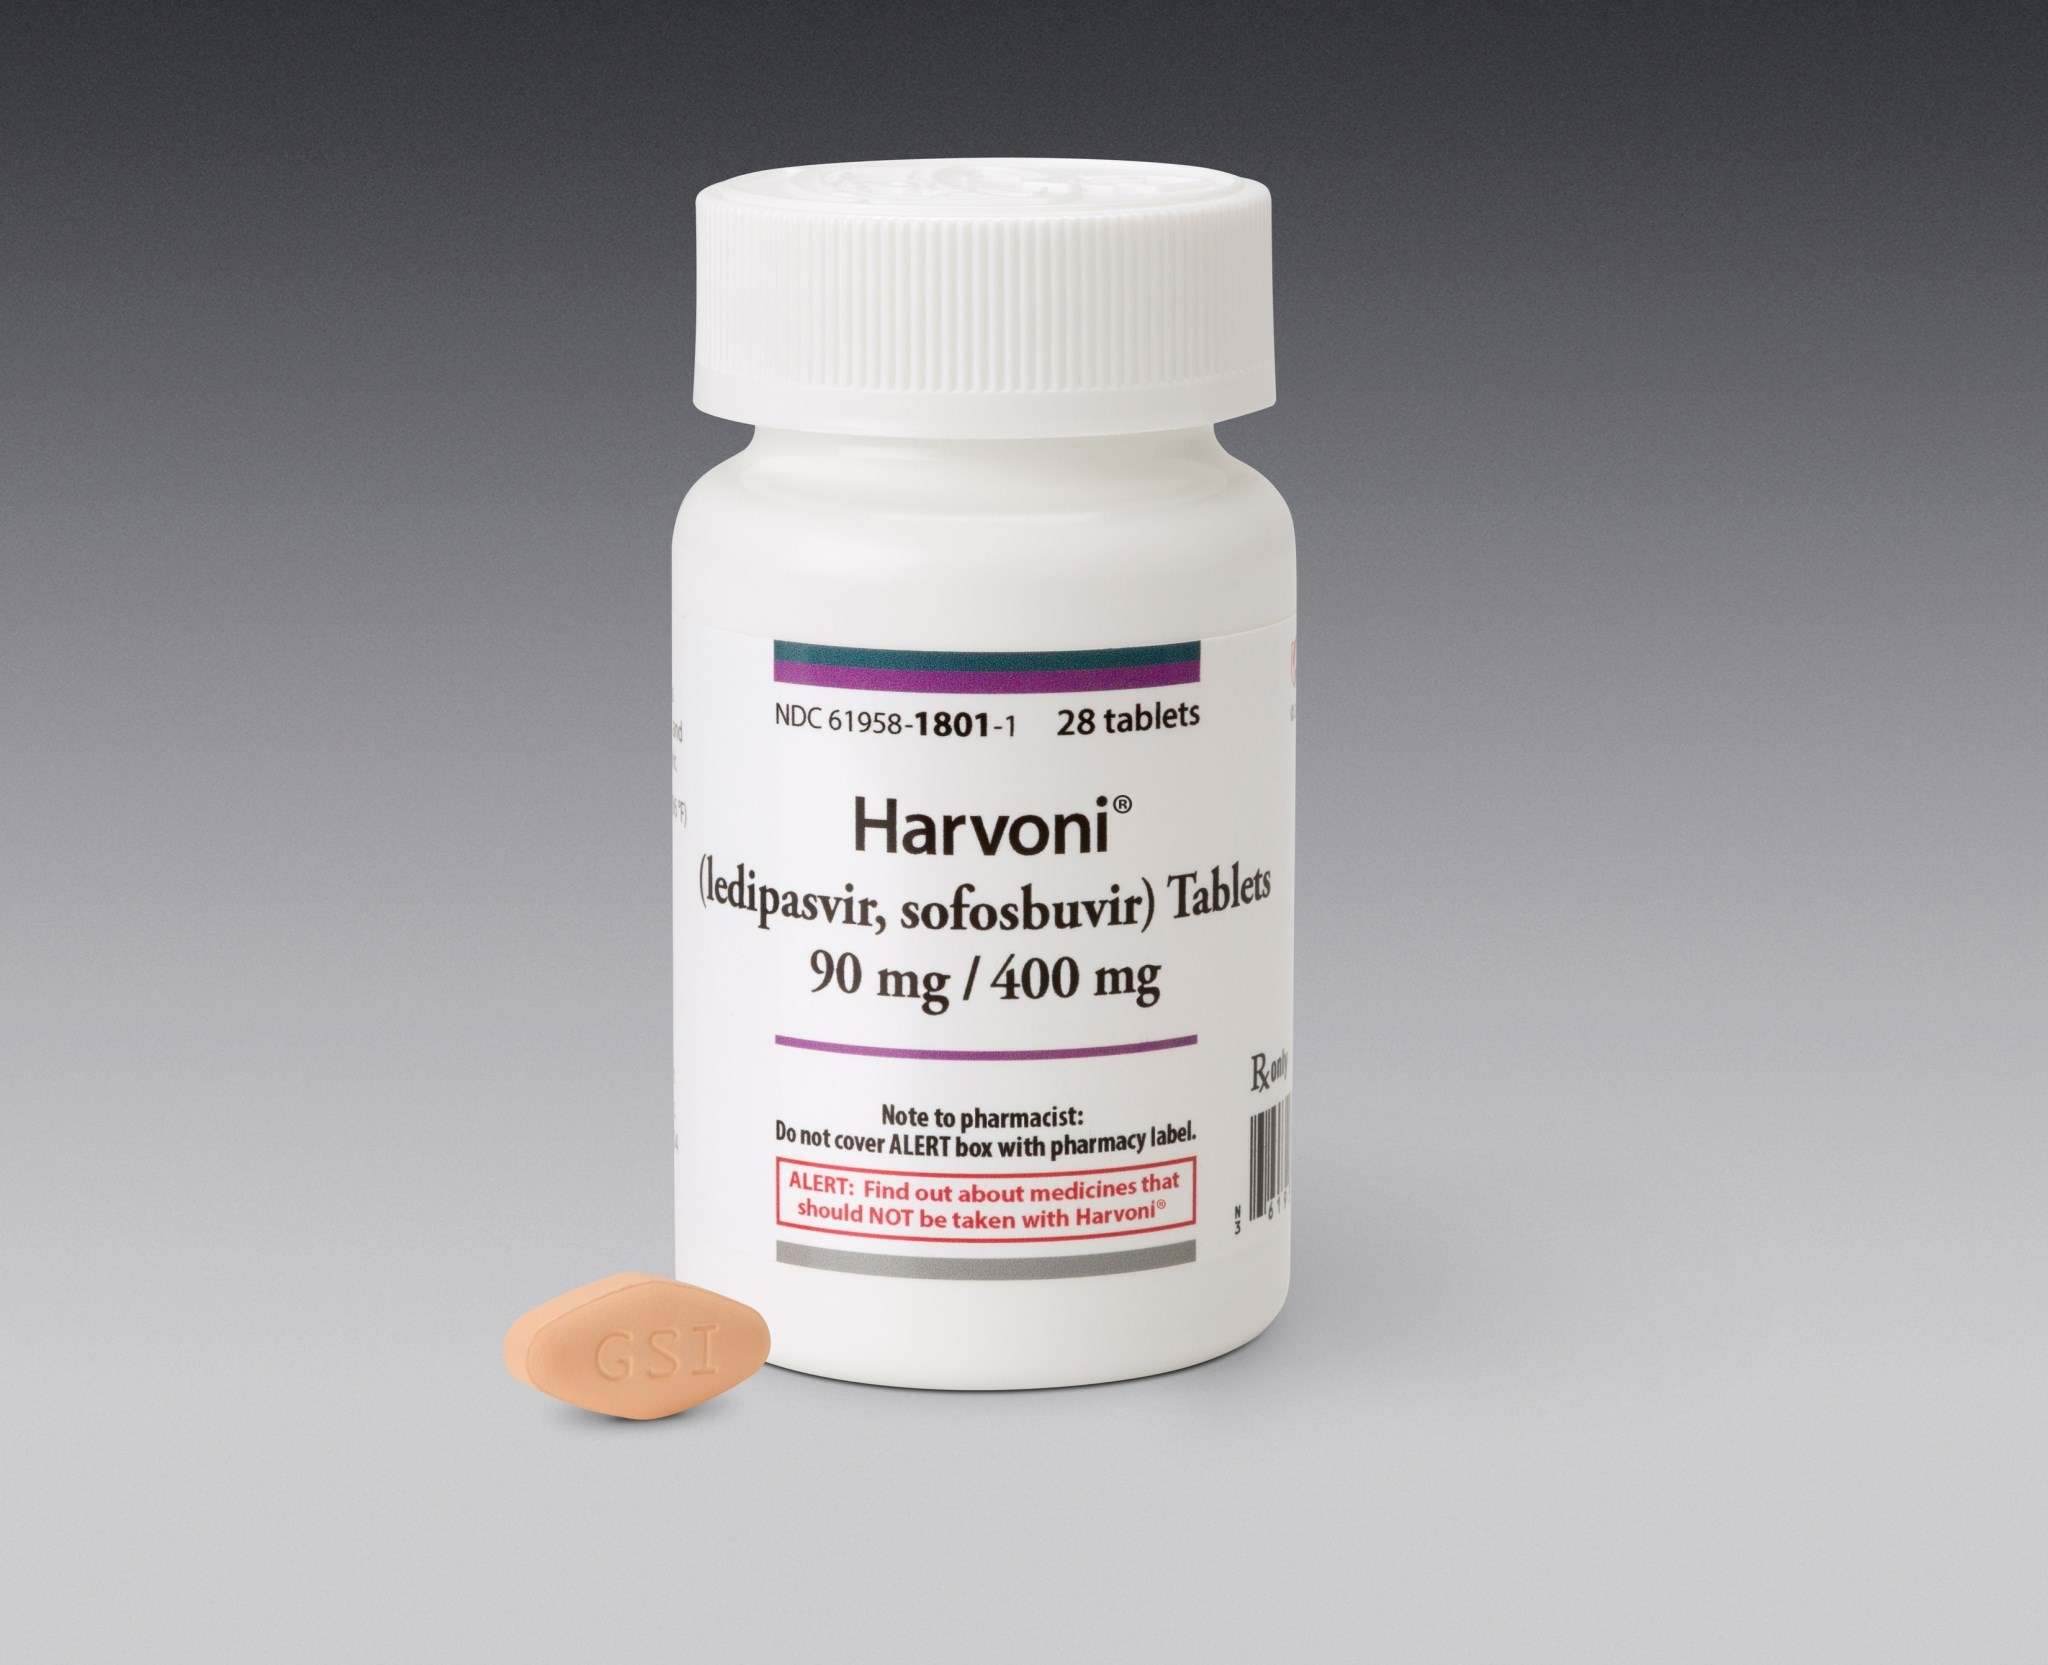 Gilead Sciences' Harvoni received FDA approval after Sovaldi.